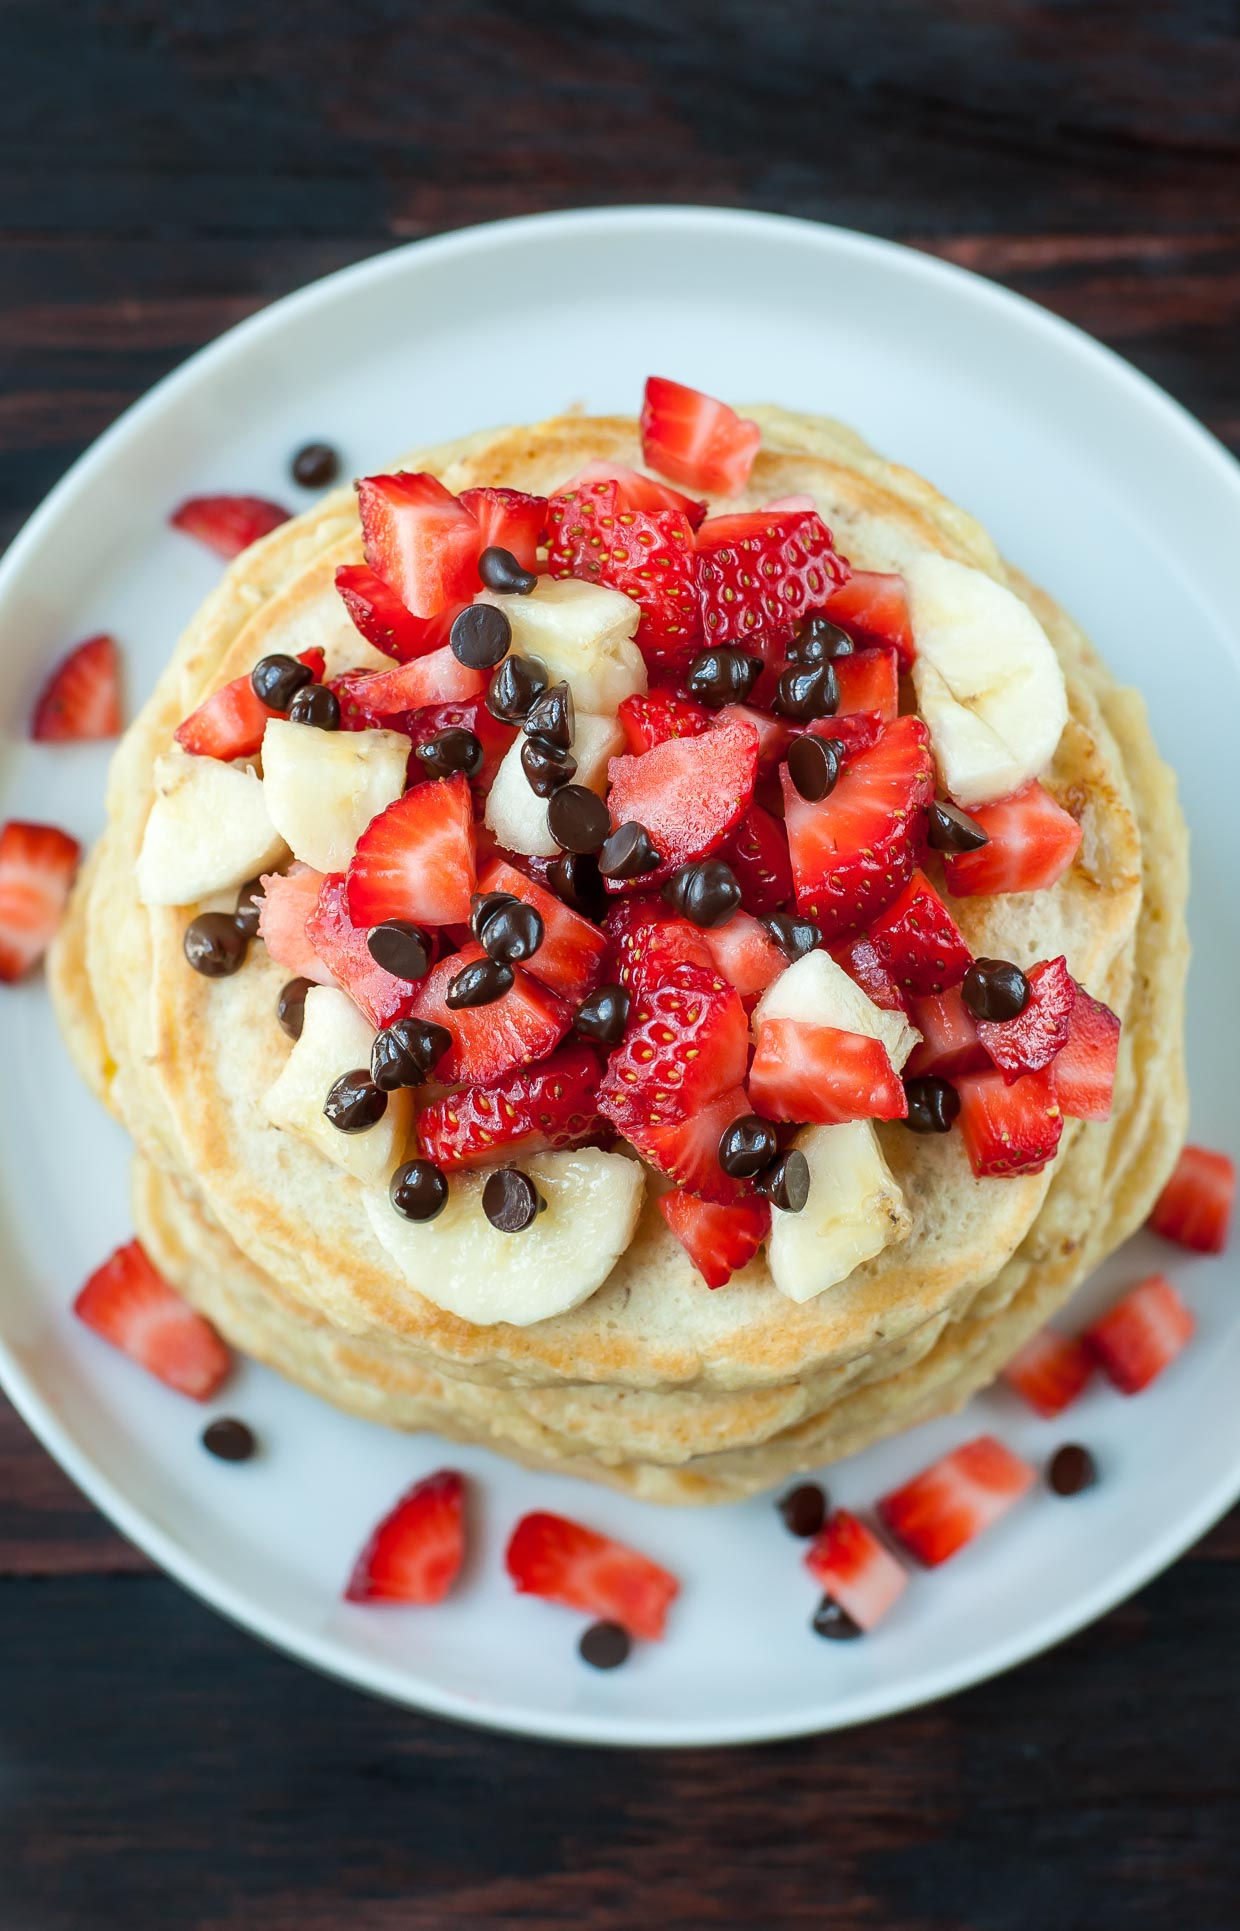 Perfectly fluffy pancakes topped with banana, strawberries, and a kiss of dark chocolate chips, these Banana Split Pancakes are a healthy spin on dessert pancakes!